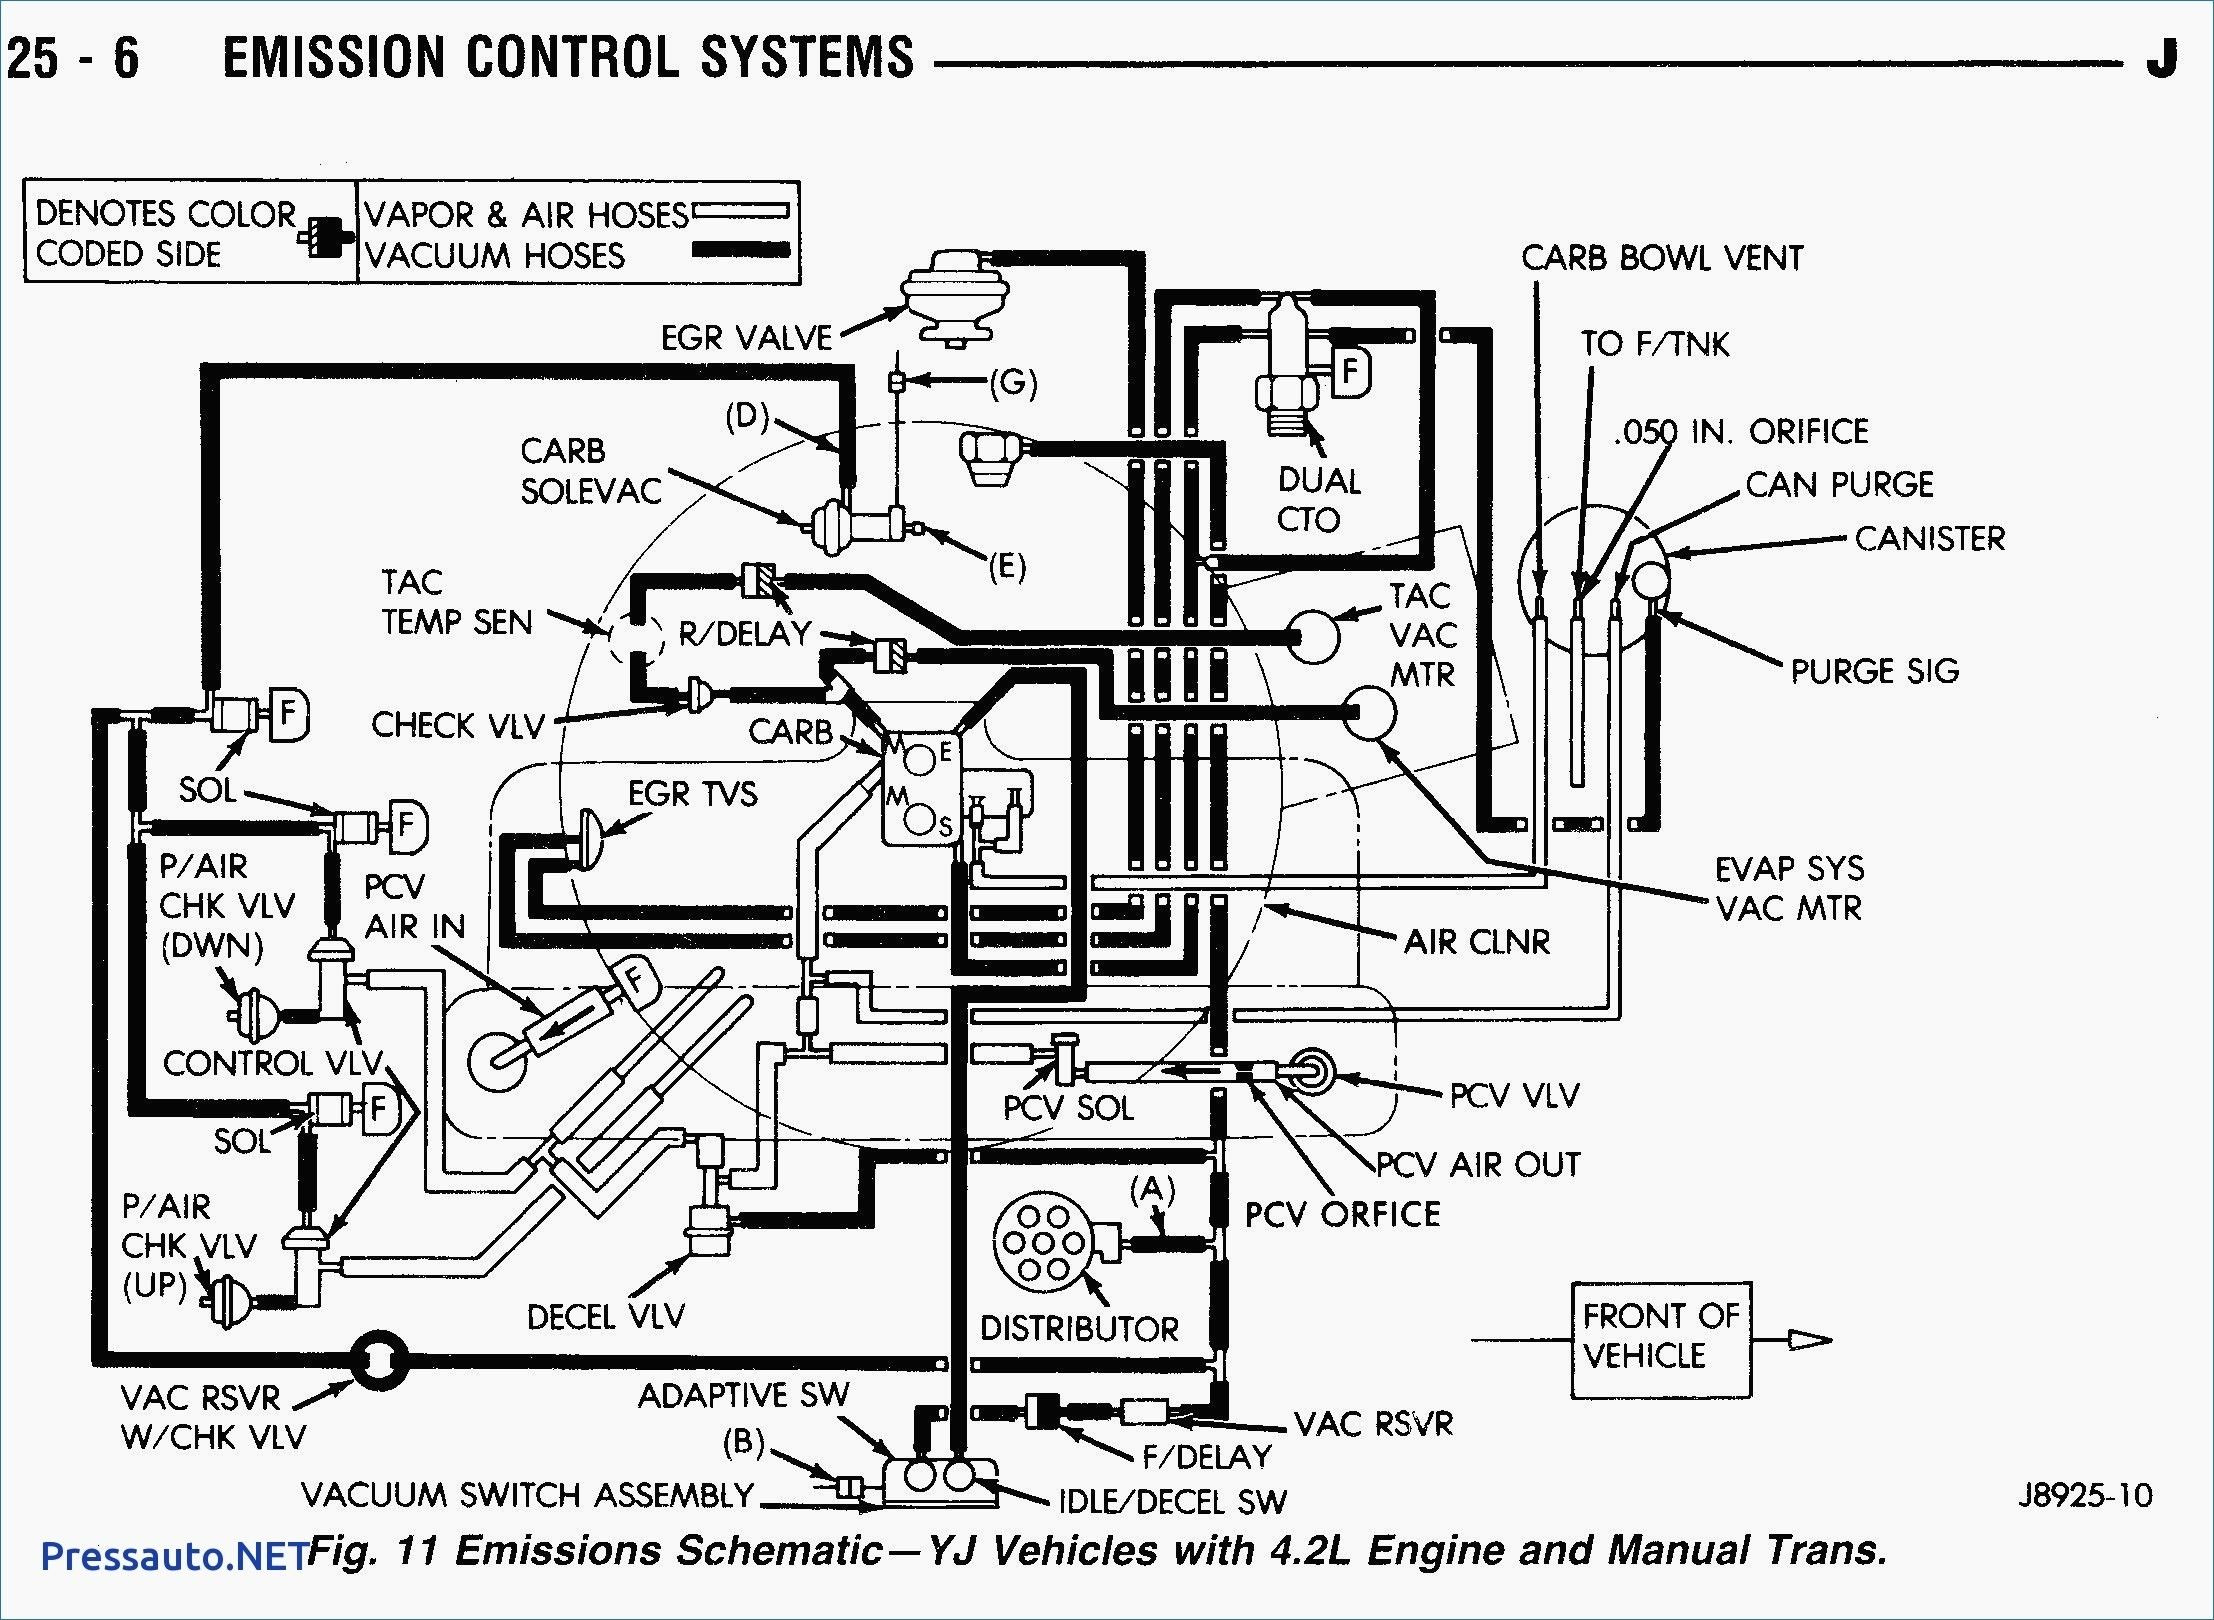 1989 jeep yj engine diagram data wiring diagram 1989 jeep cherokee vacuum line diagram 1989 jeep wrangler yj ignition [ 2214 x 1620 Pixel ]